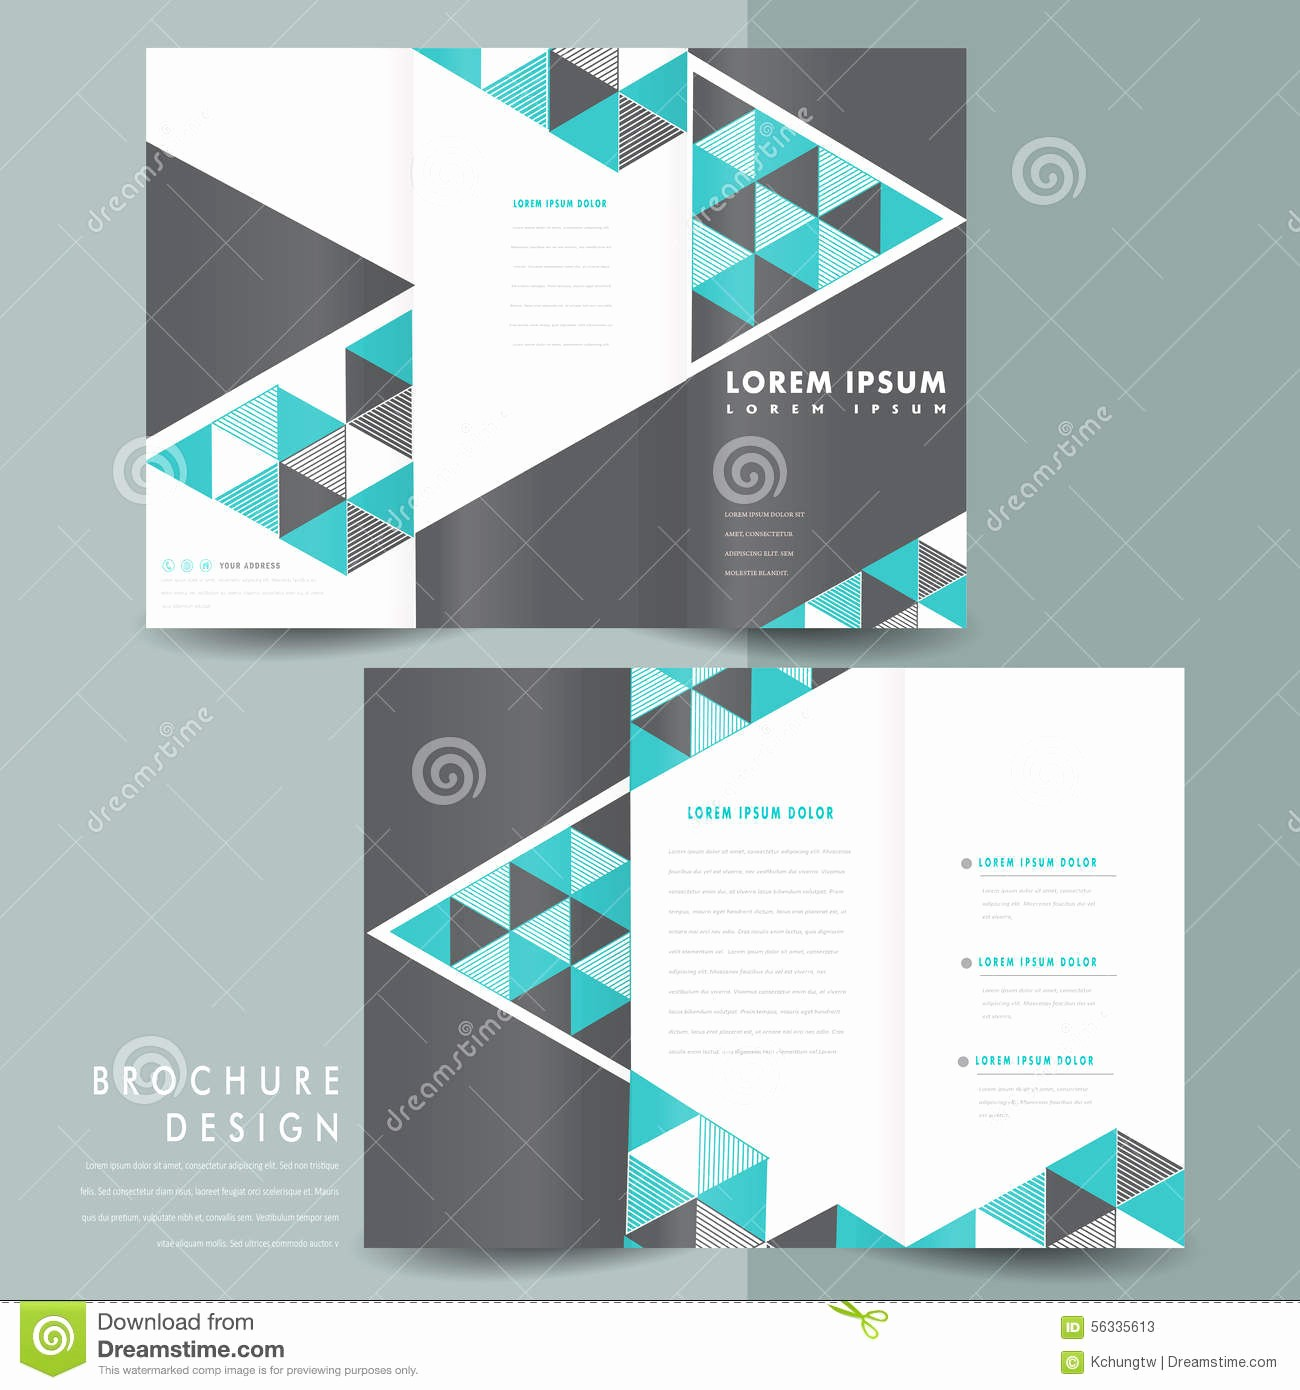 3 Fold Brochure Template Word Luxury Tri Fold Brochure Template for Word Lovely Examples with